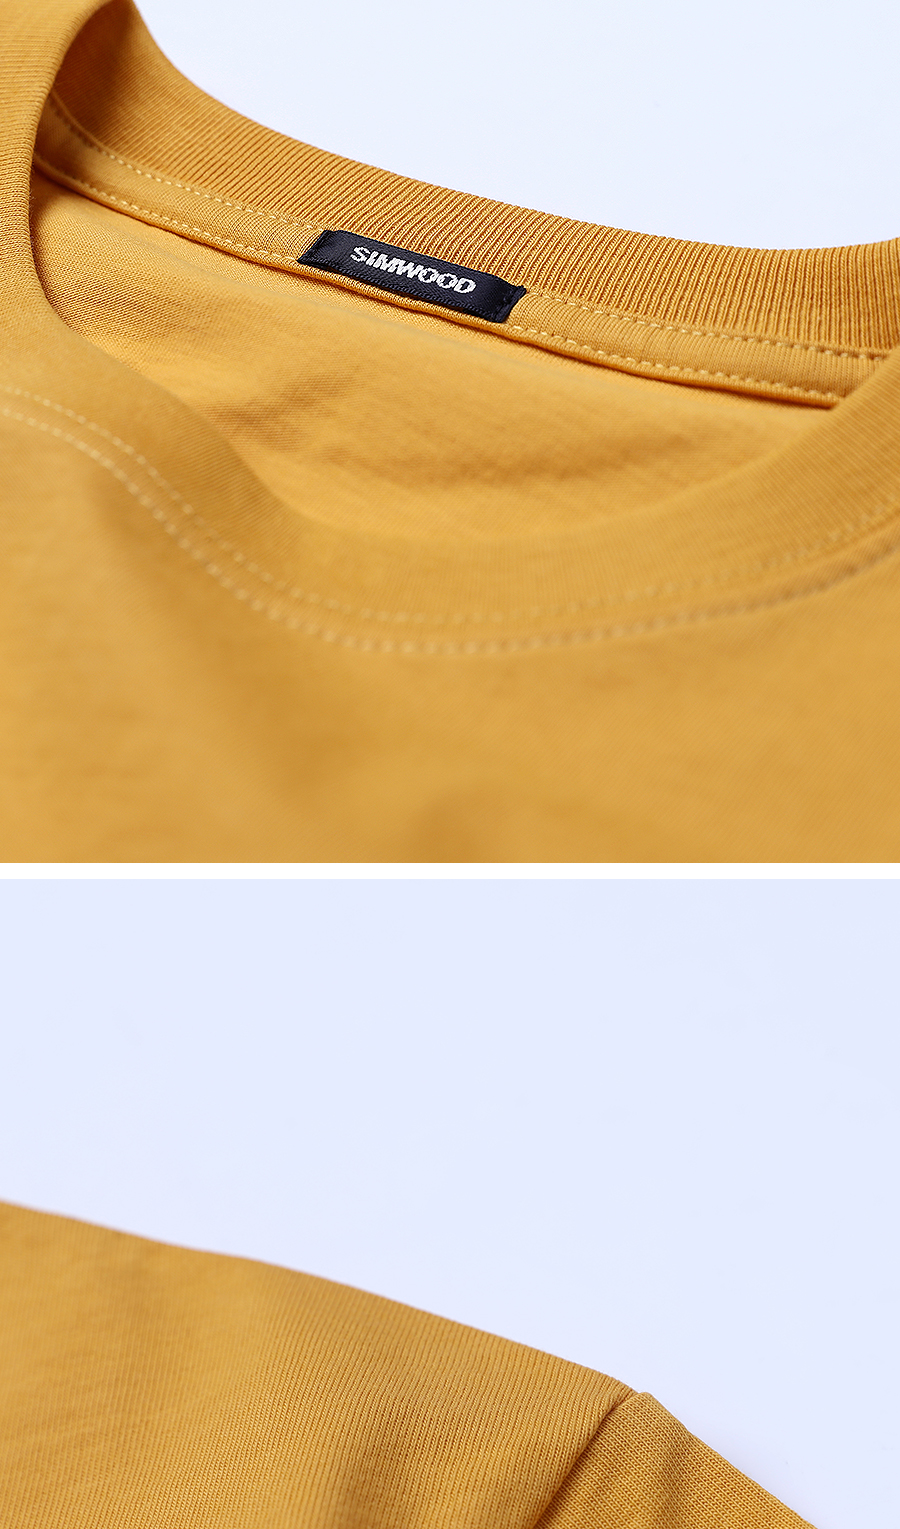 SIMWOOD 19 Summer New T-Shirt Men 100% Cotton Solid Color Casual t shirt Basics O-neck High Quality Plus Size Male Tee 190004 32